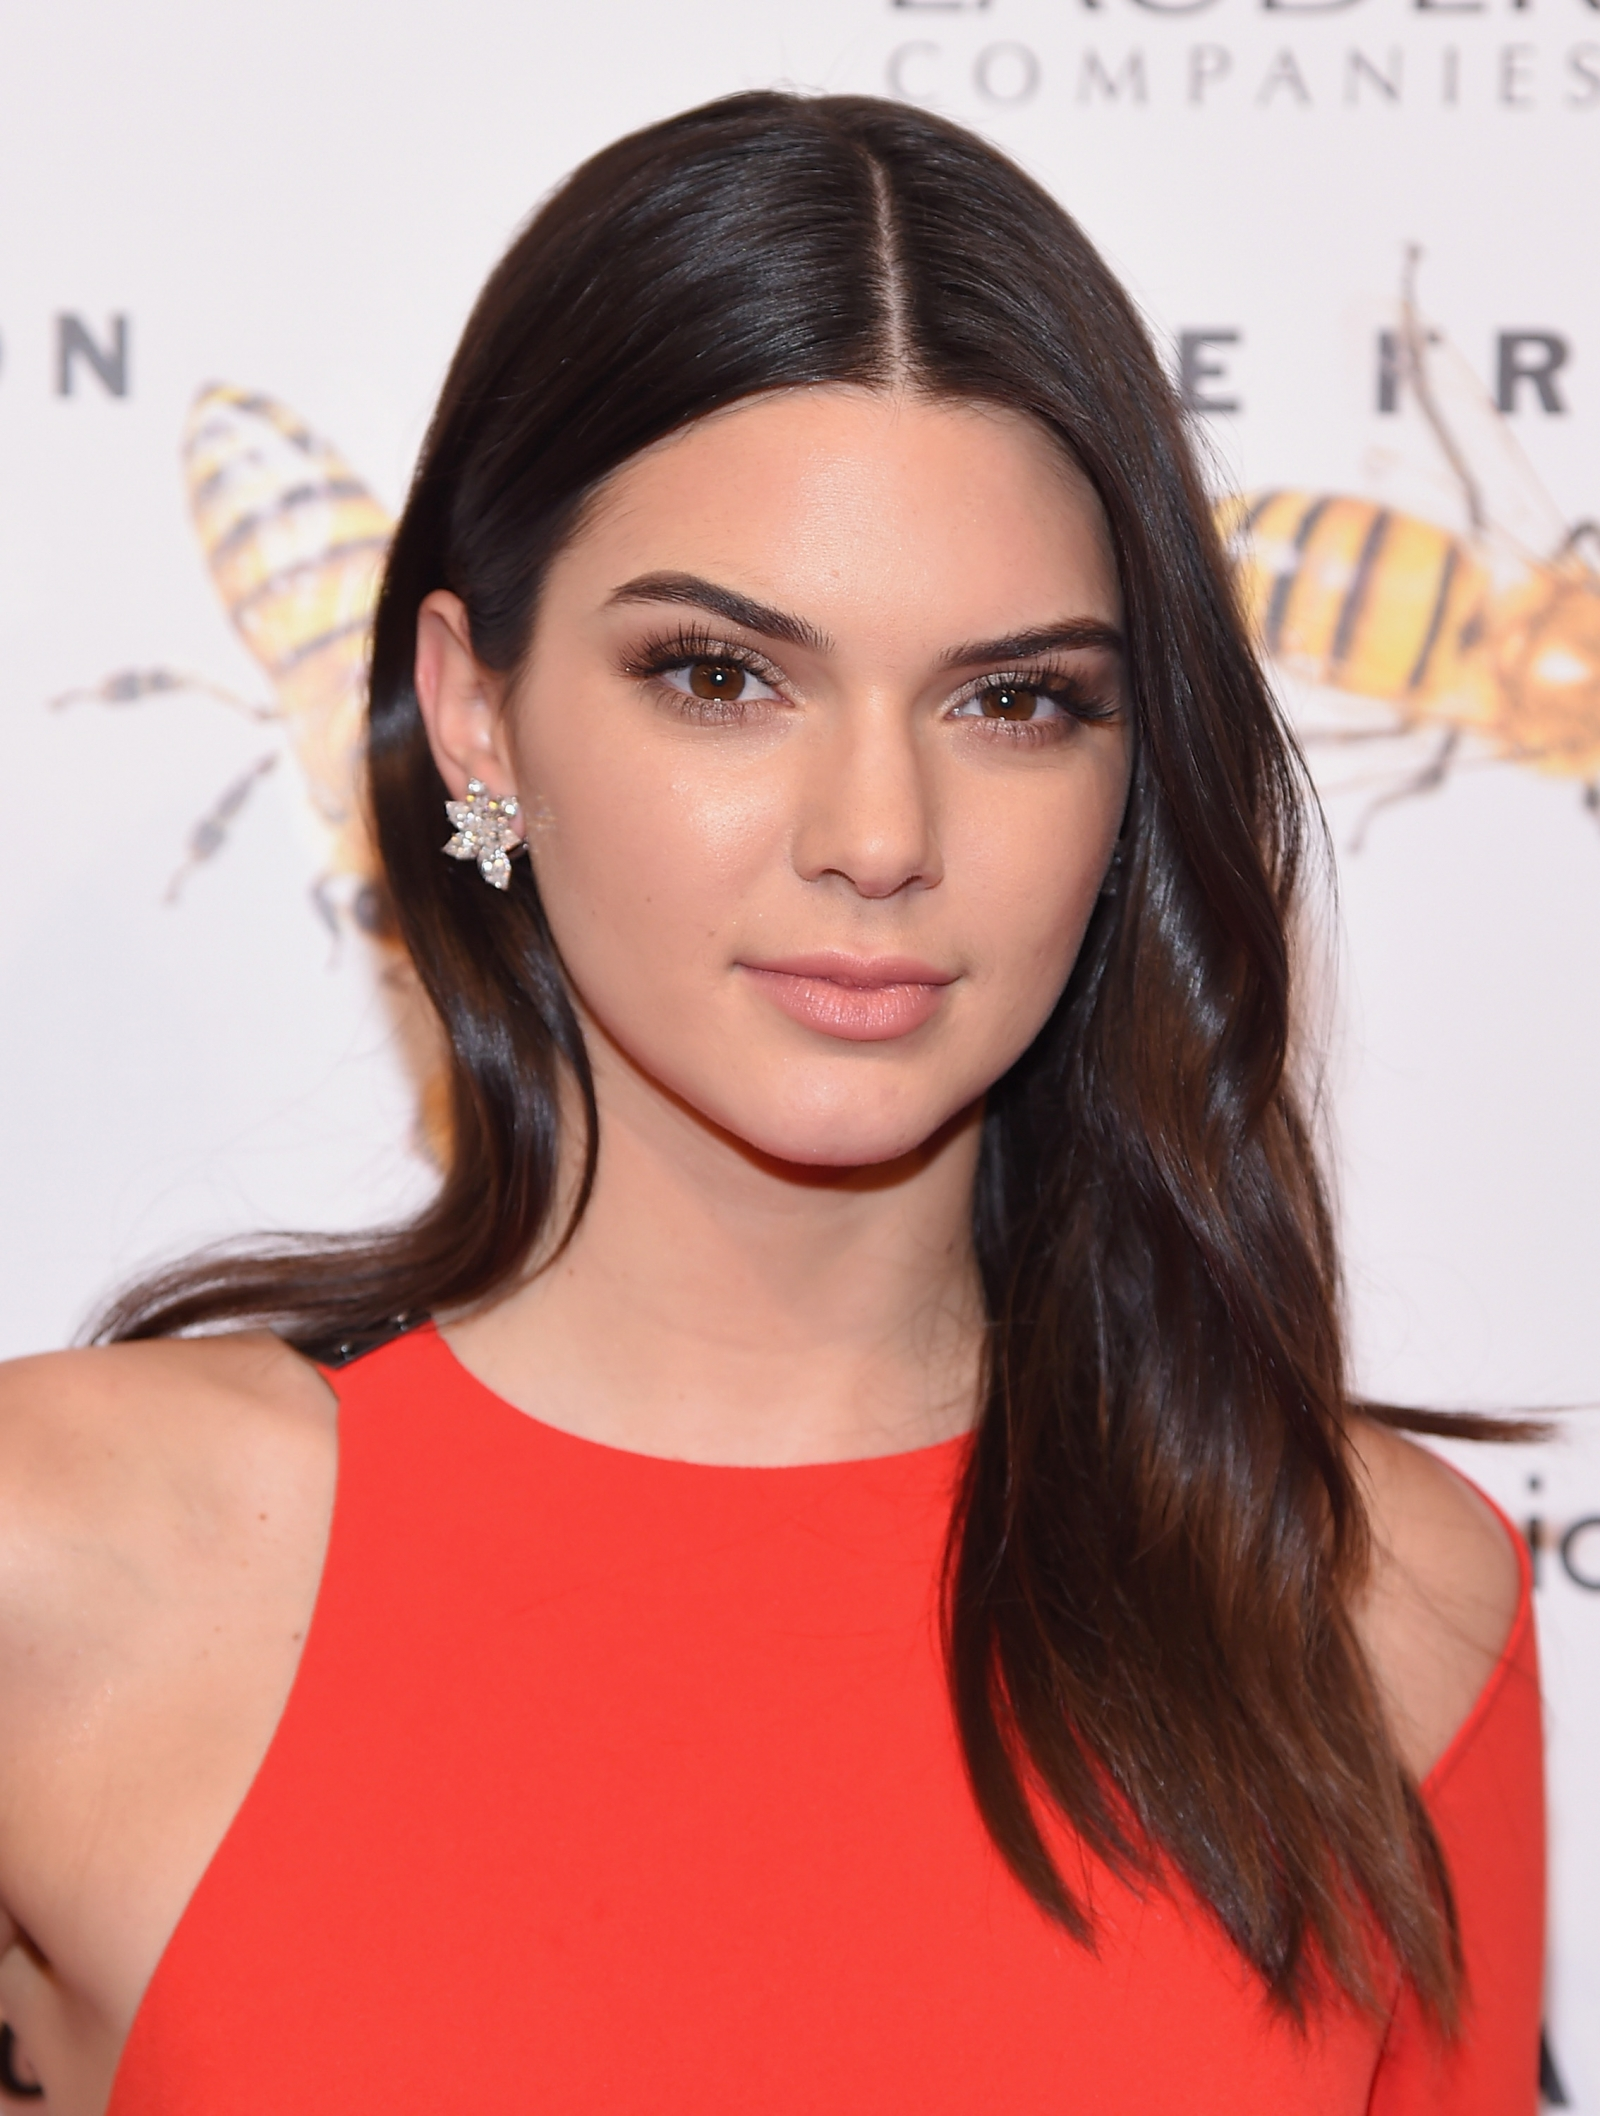 Kendall Jenner Taylor Swift